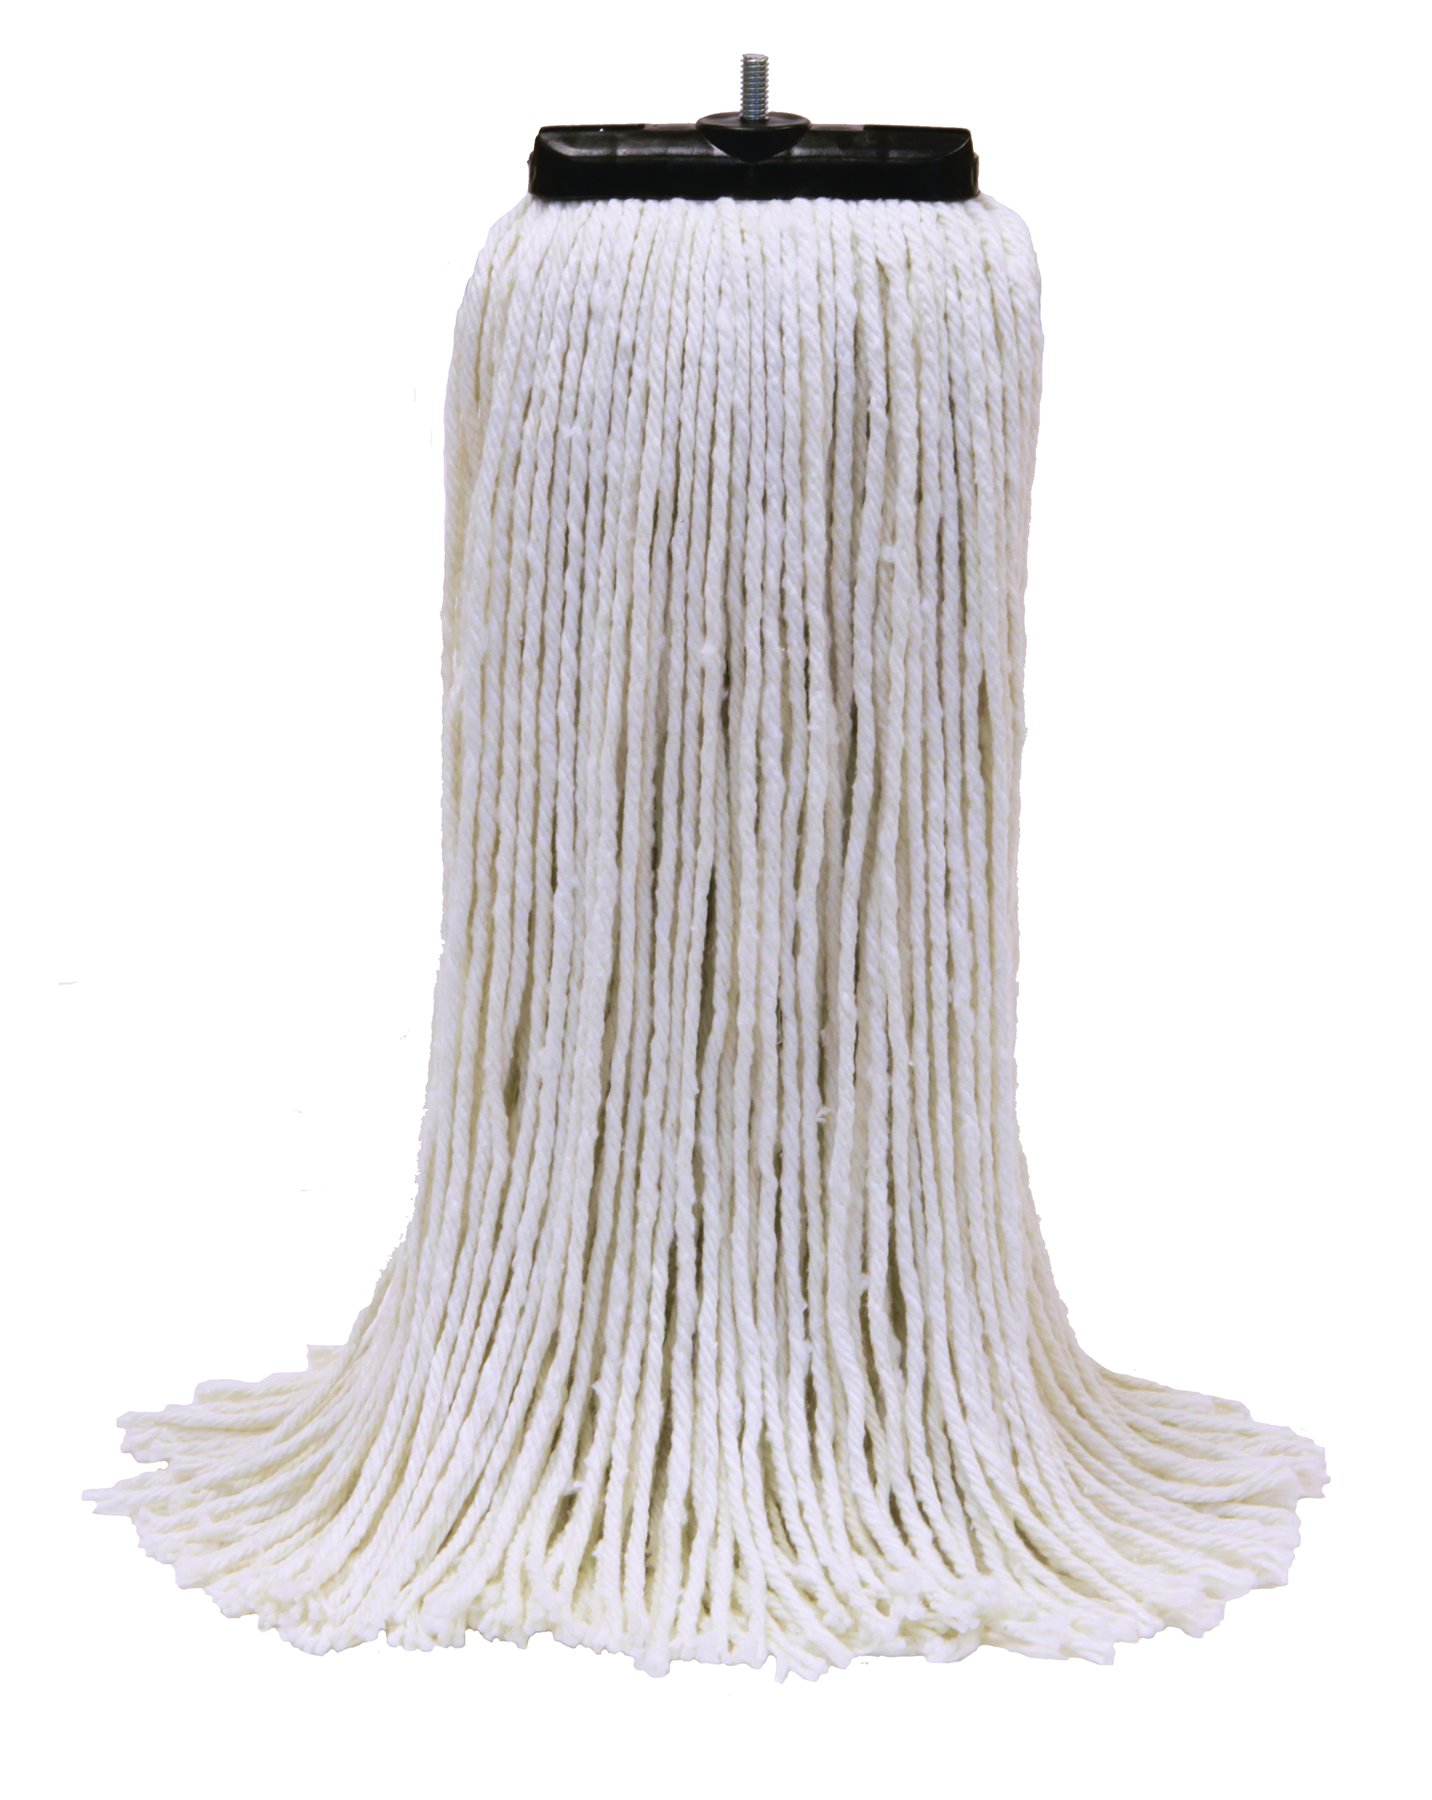 O'Cedar Commercial 97831-3 MaxiRayon Screw-On Mop, 24 oz (Pack of 3) by O-Cedar Commercial